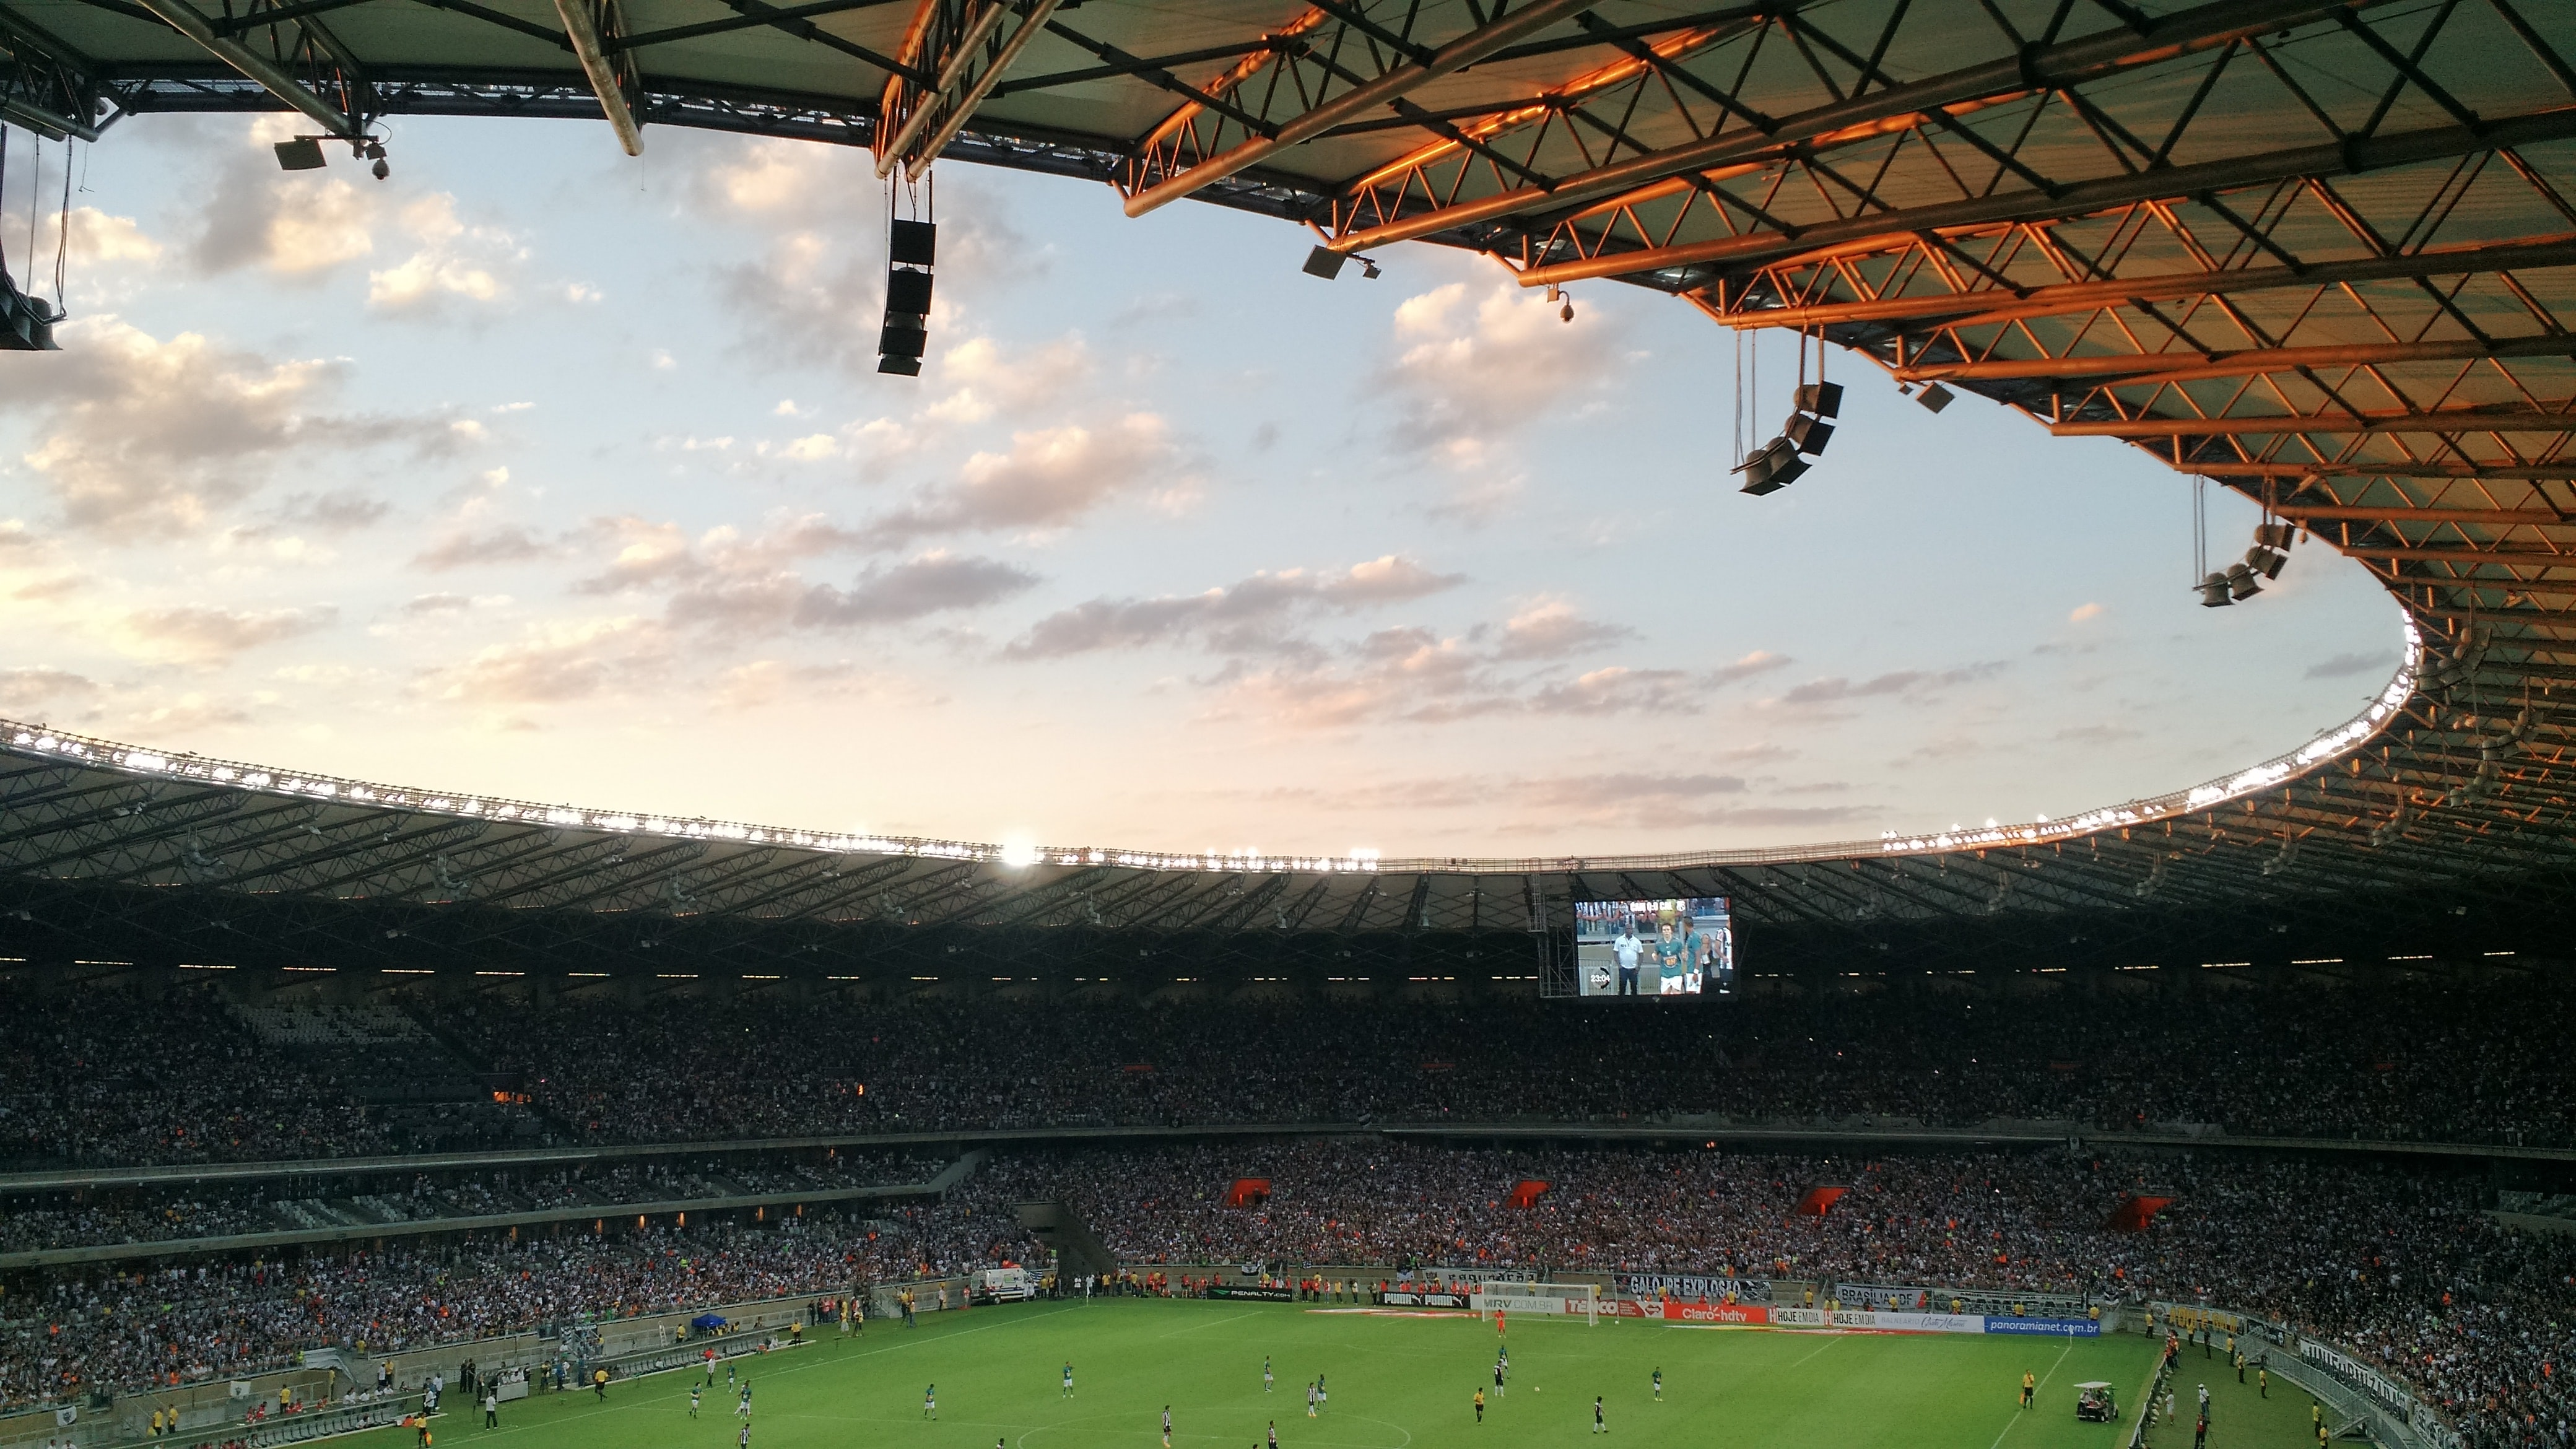 Late afternoon view of a crowded soccer stadium during the match